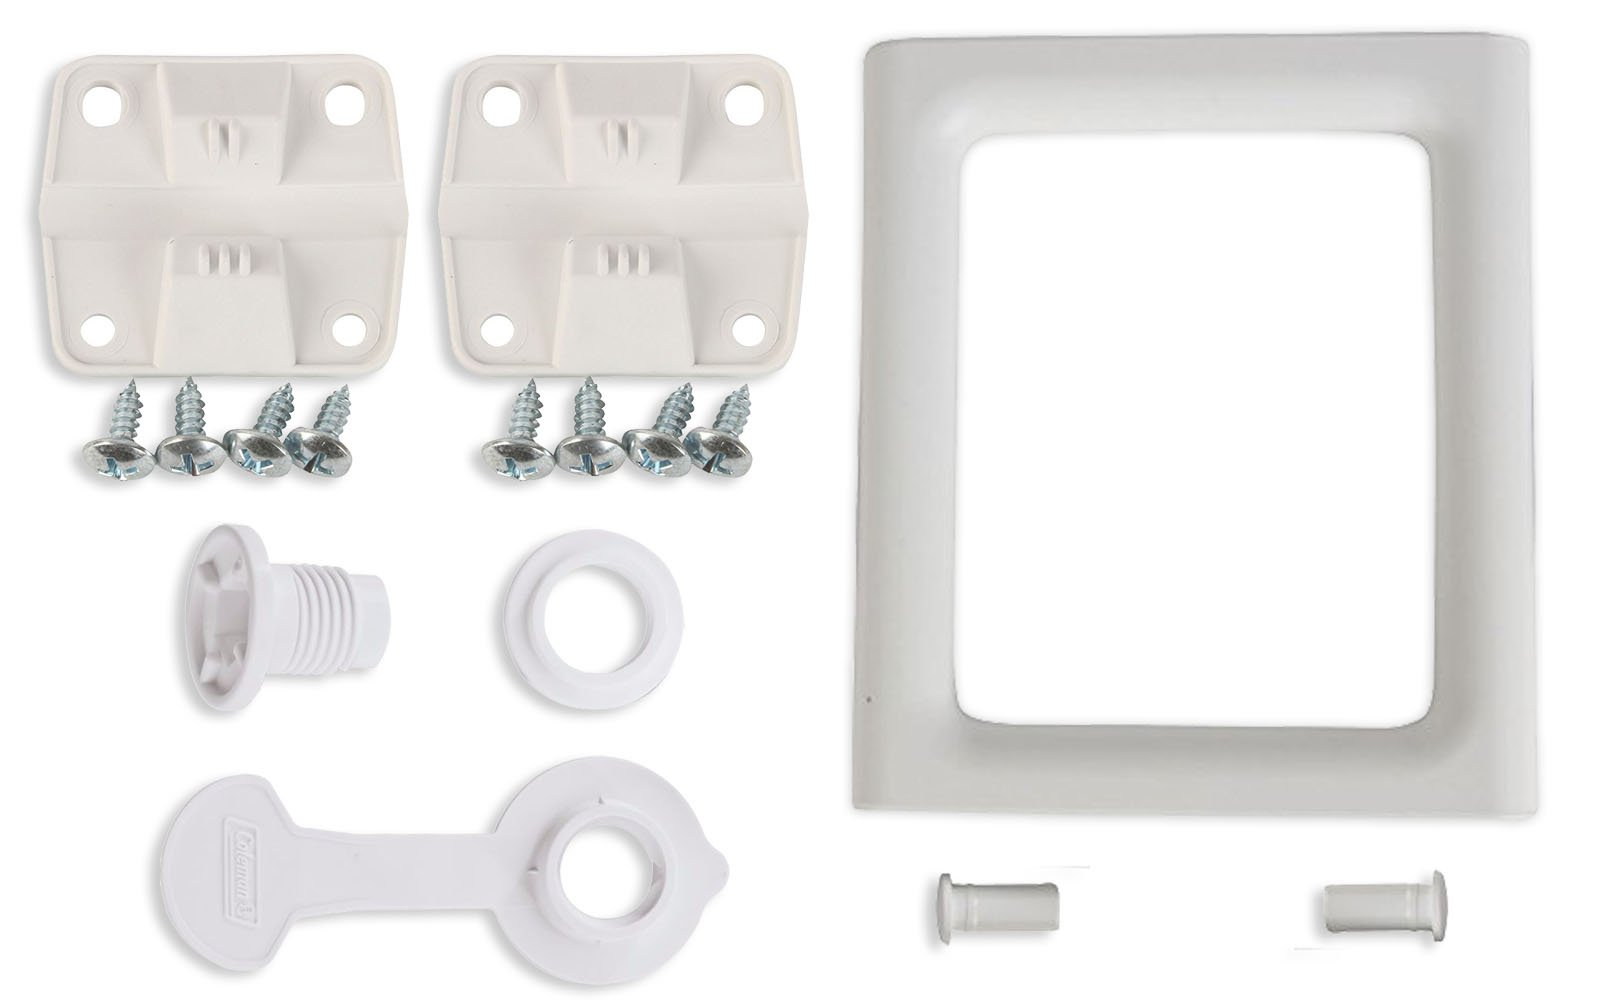 Coleman Ice Chest Cooler Replacement Parts Complete Set - 2 Plastic Hinges With Screws, 2-Way Swing Handle, Drain Plug Assembly (1'' Shaft Length) - in Package by Main Event USA - Buy Combo and Save by Coleman